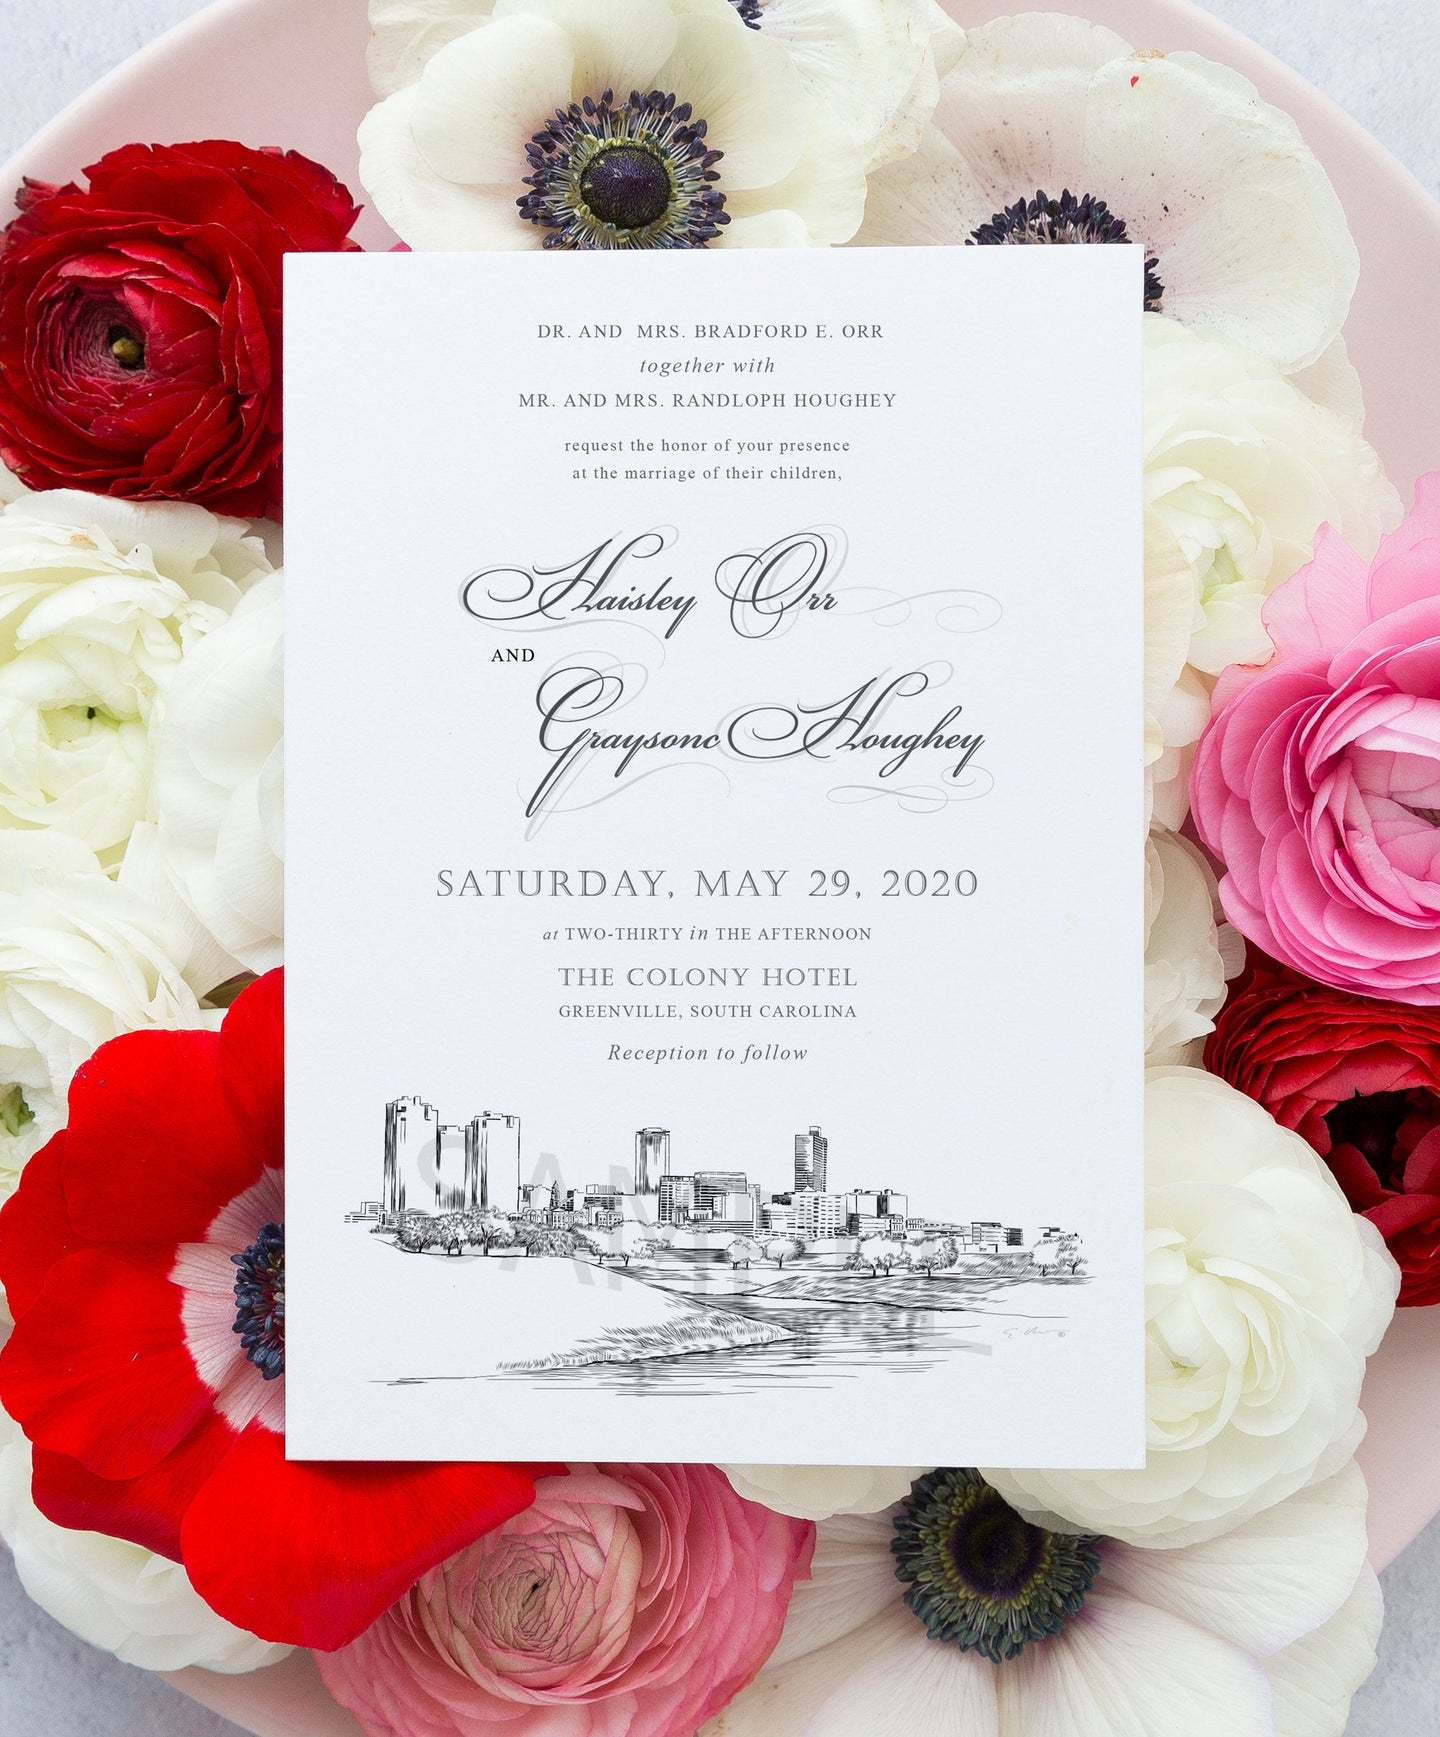 Ft Worth, TX Skyline Wedding Invitation, Fort Worth Wedding, Texas Skyline Invite, Weddings (Sold in Sets of 10 Invitations + Env's)